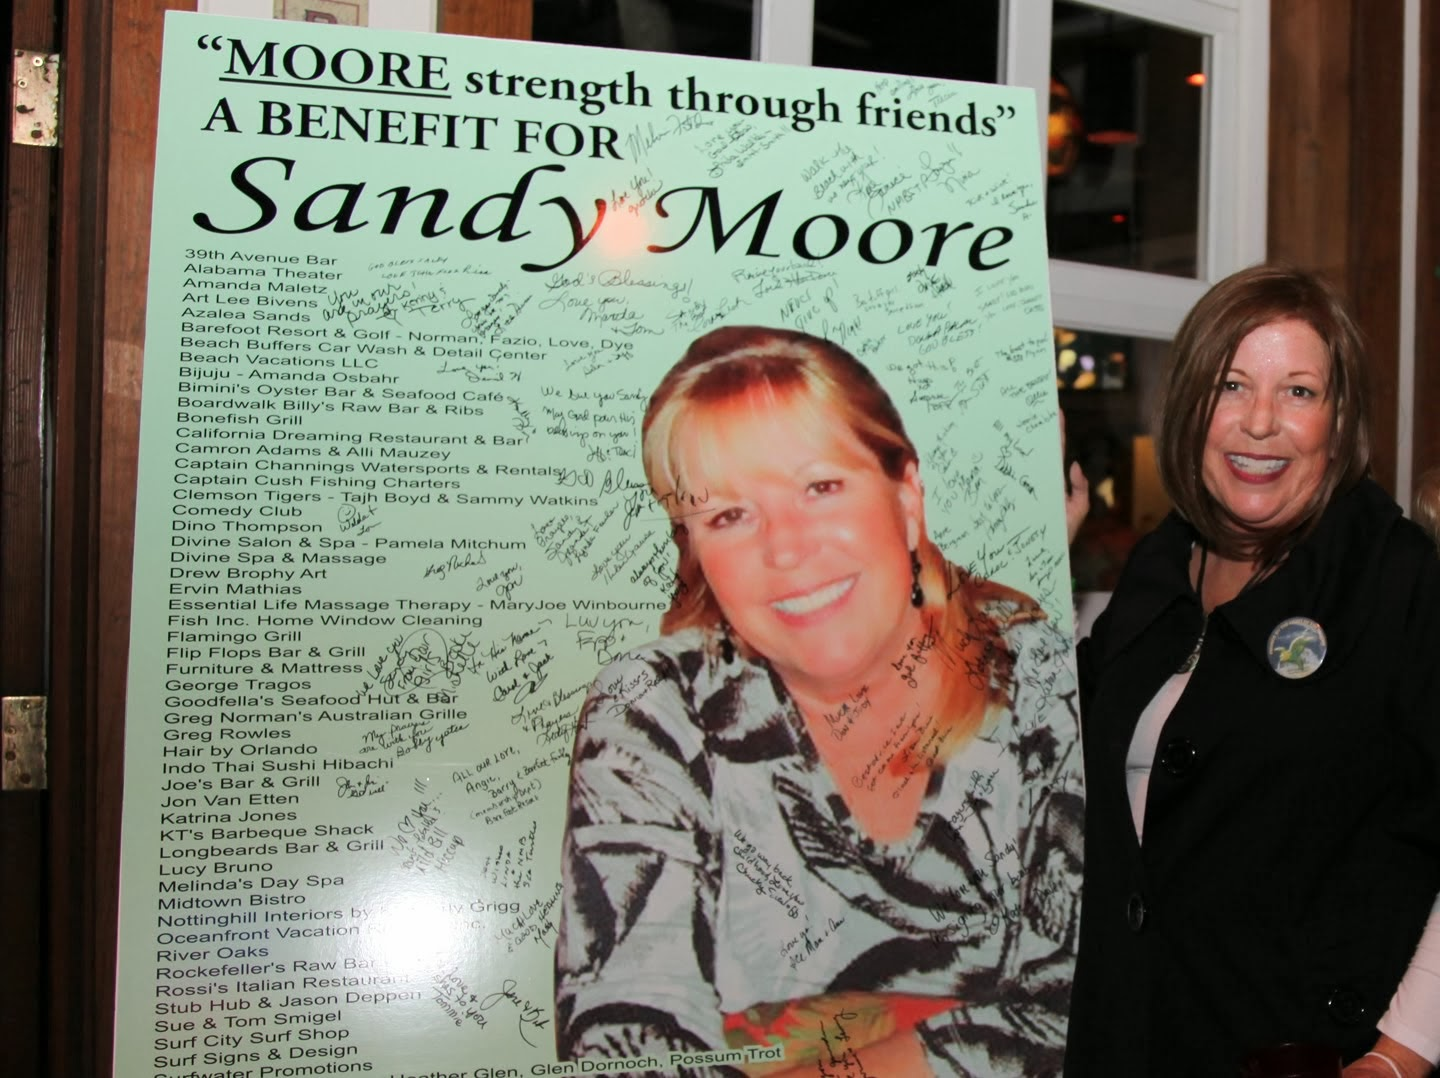 2014 Sea Turtle Nesting Season Dedicated to Sandy Moore and her fight to regain her health